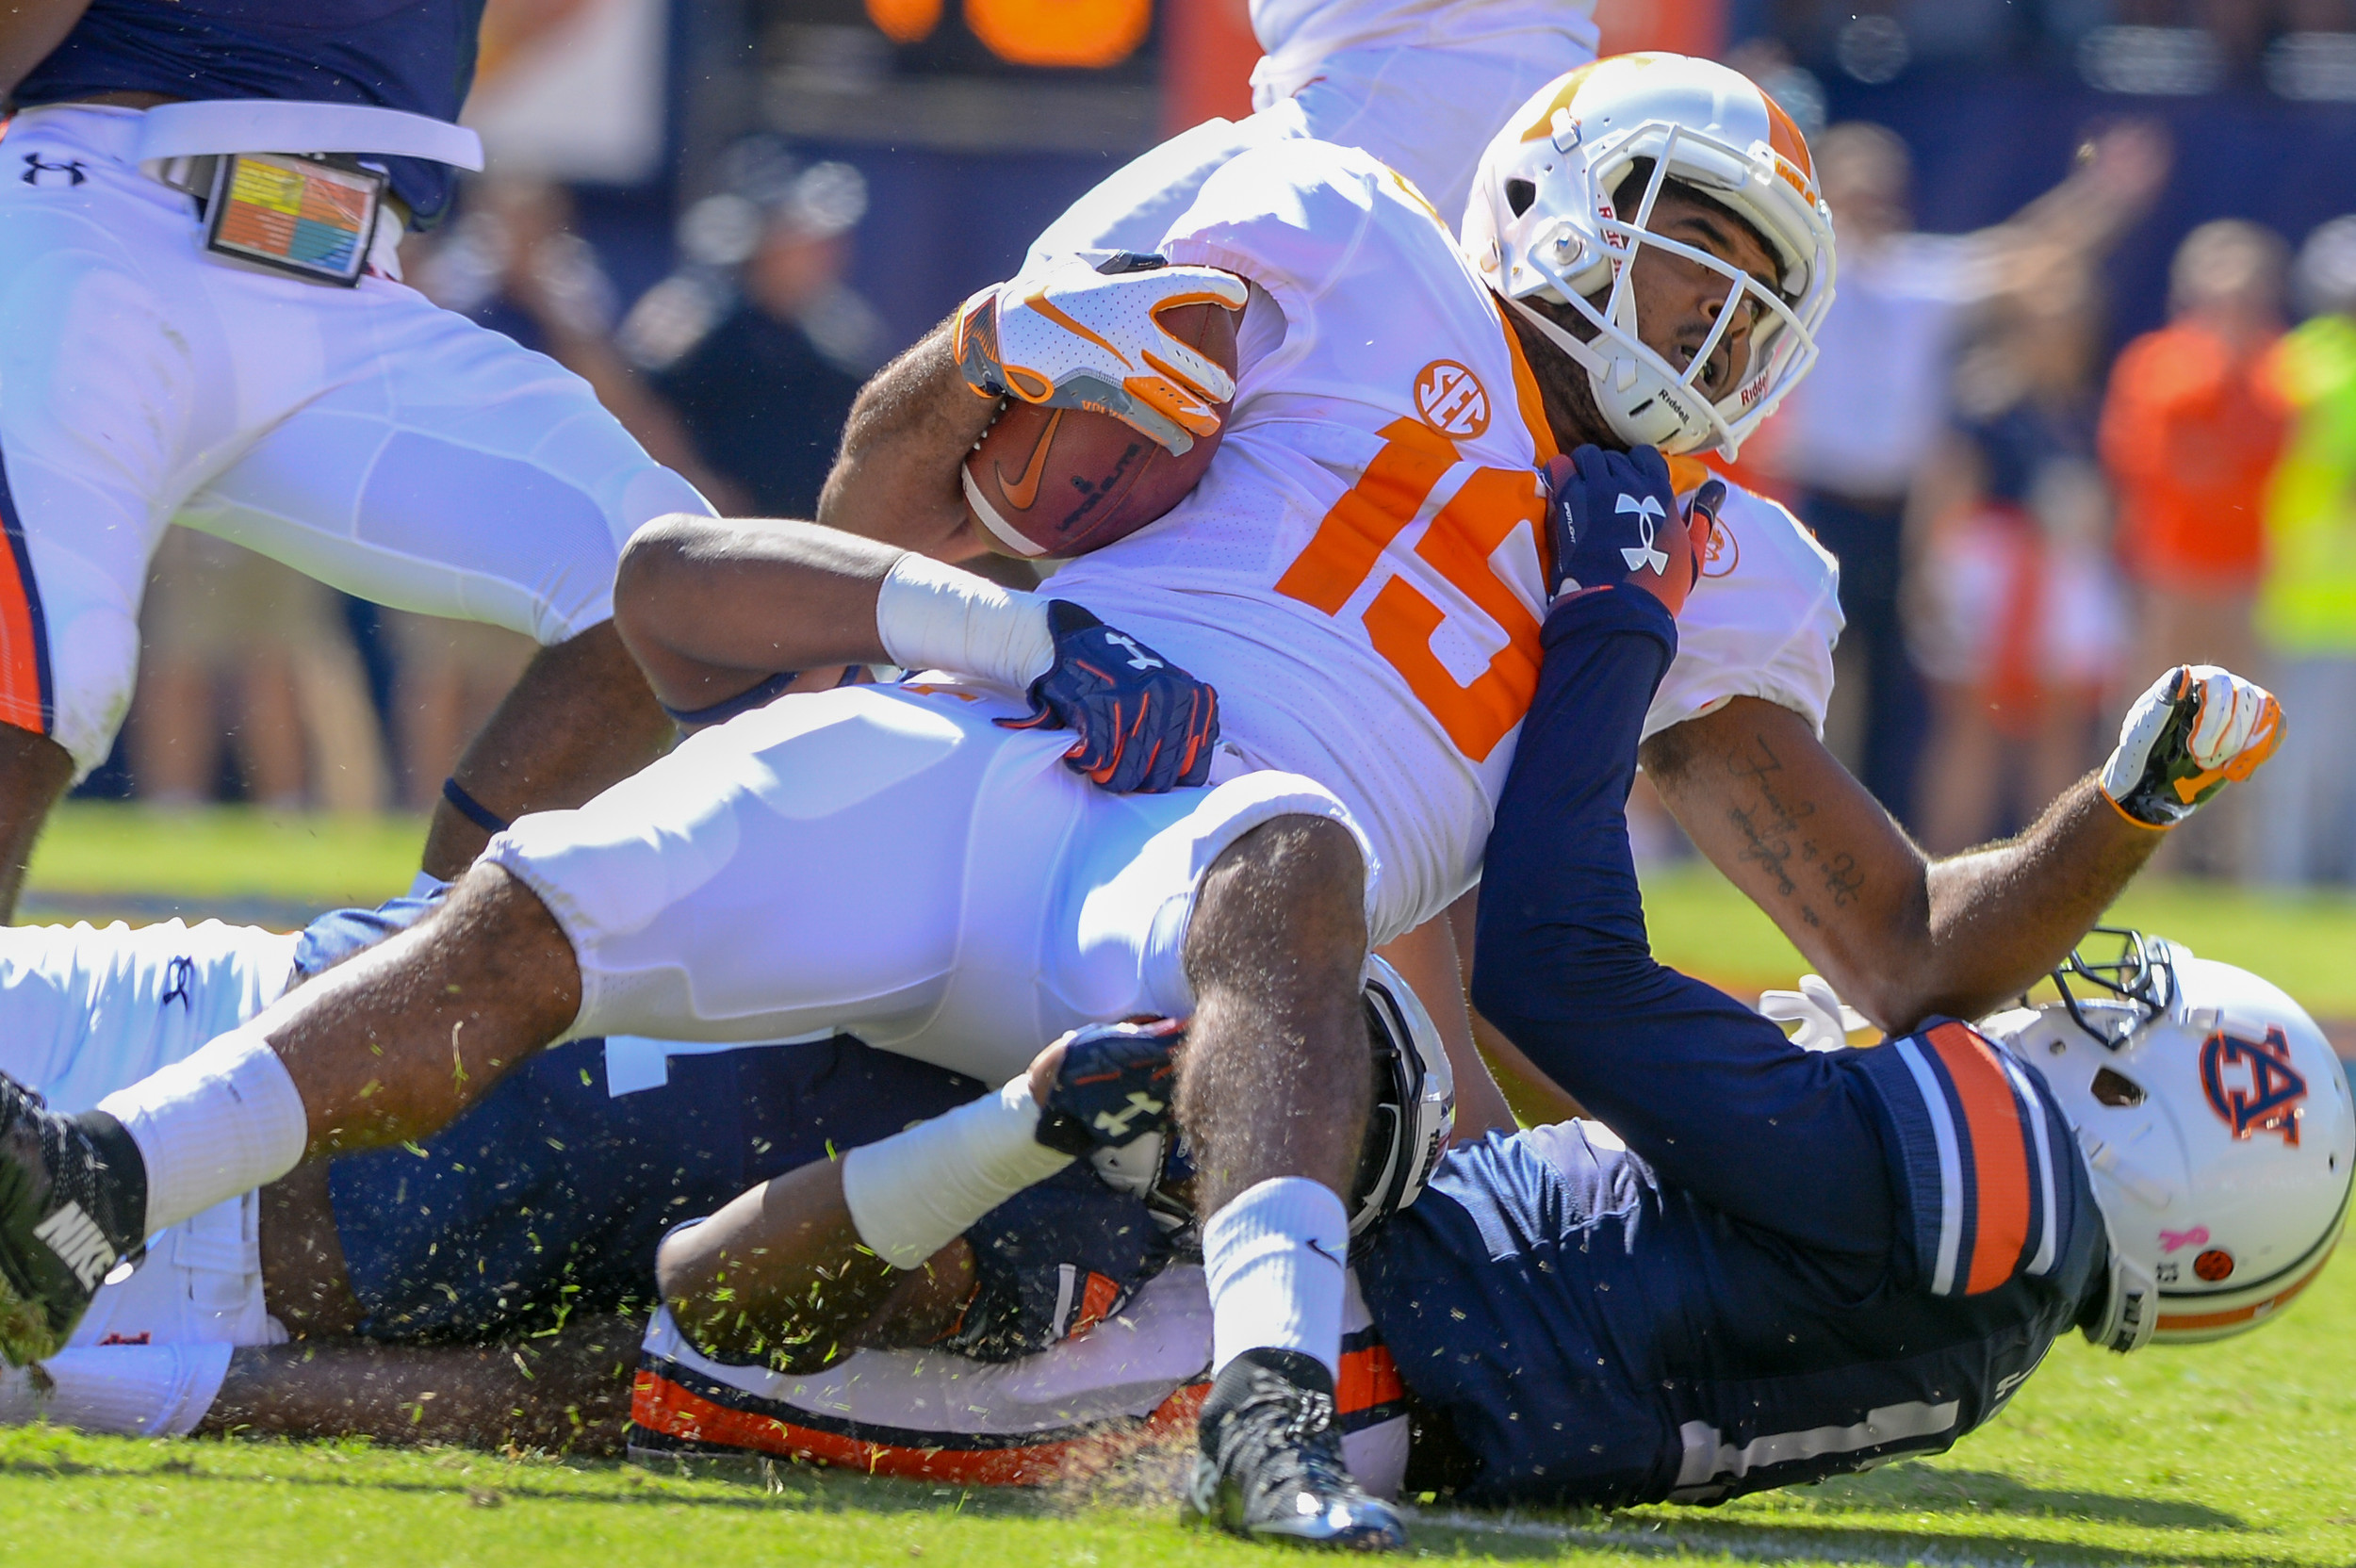 Tennessee Volunteers wide receiver Jauan Jennings (15) is brought down by Auburn Tigers defensive back Javaris Davis (13) and linebacker Big Kat Bryant (1) during the first half of Saturday's game, at Jordan-Hare Stadium in Auburn, AL. Daily Mountain Eagle -  Jeff Johnsey